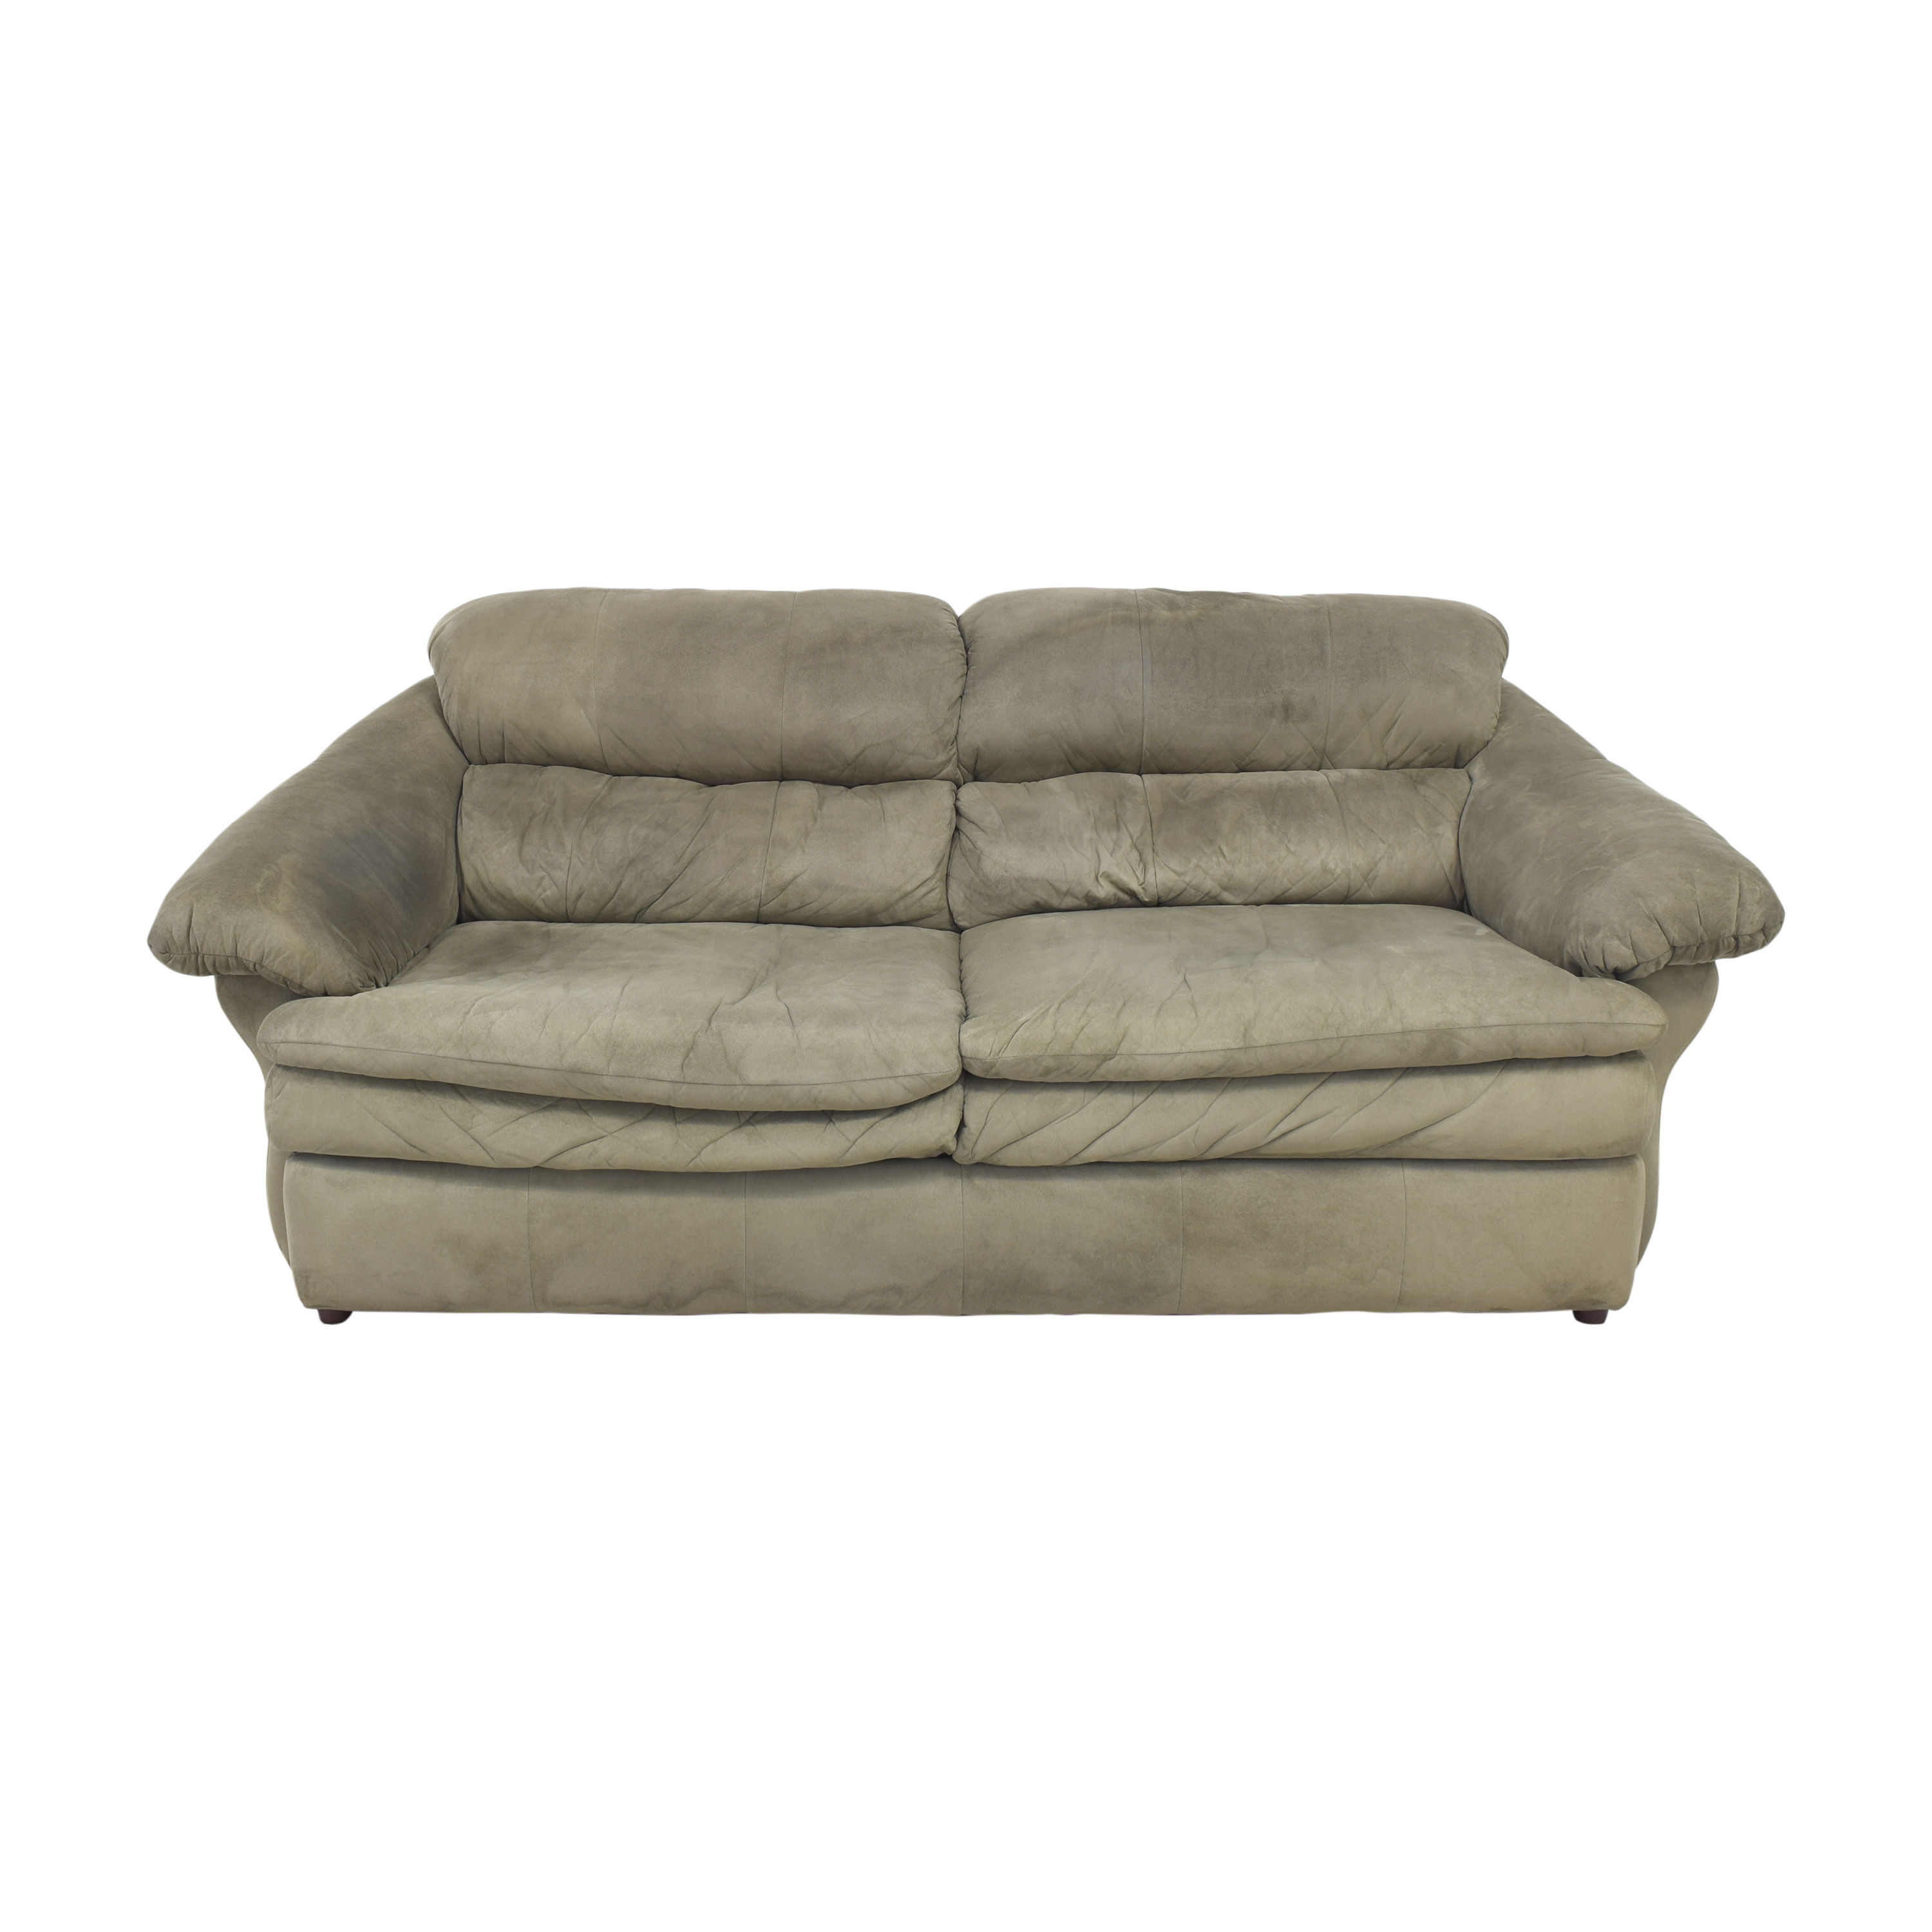 Benchcraft Benchcraft Two Cushion Sofa discount